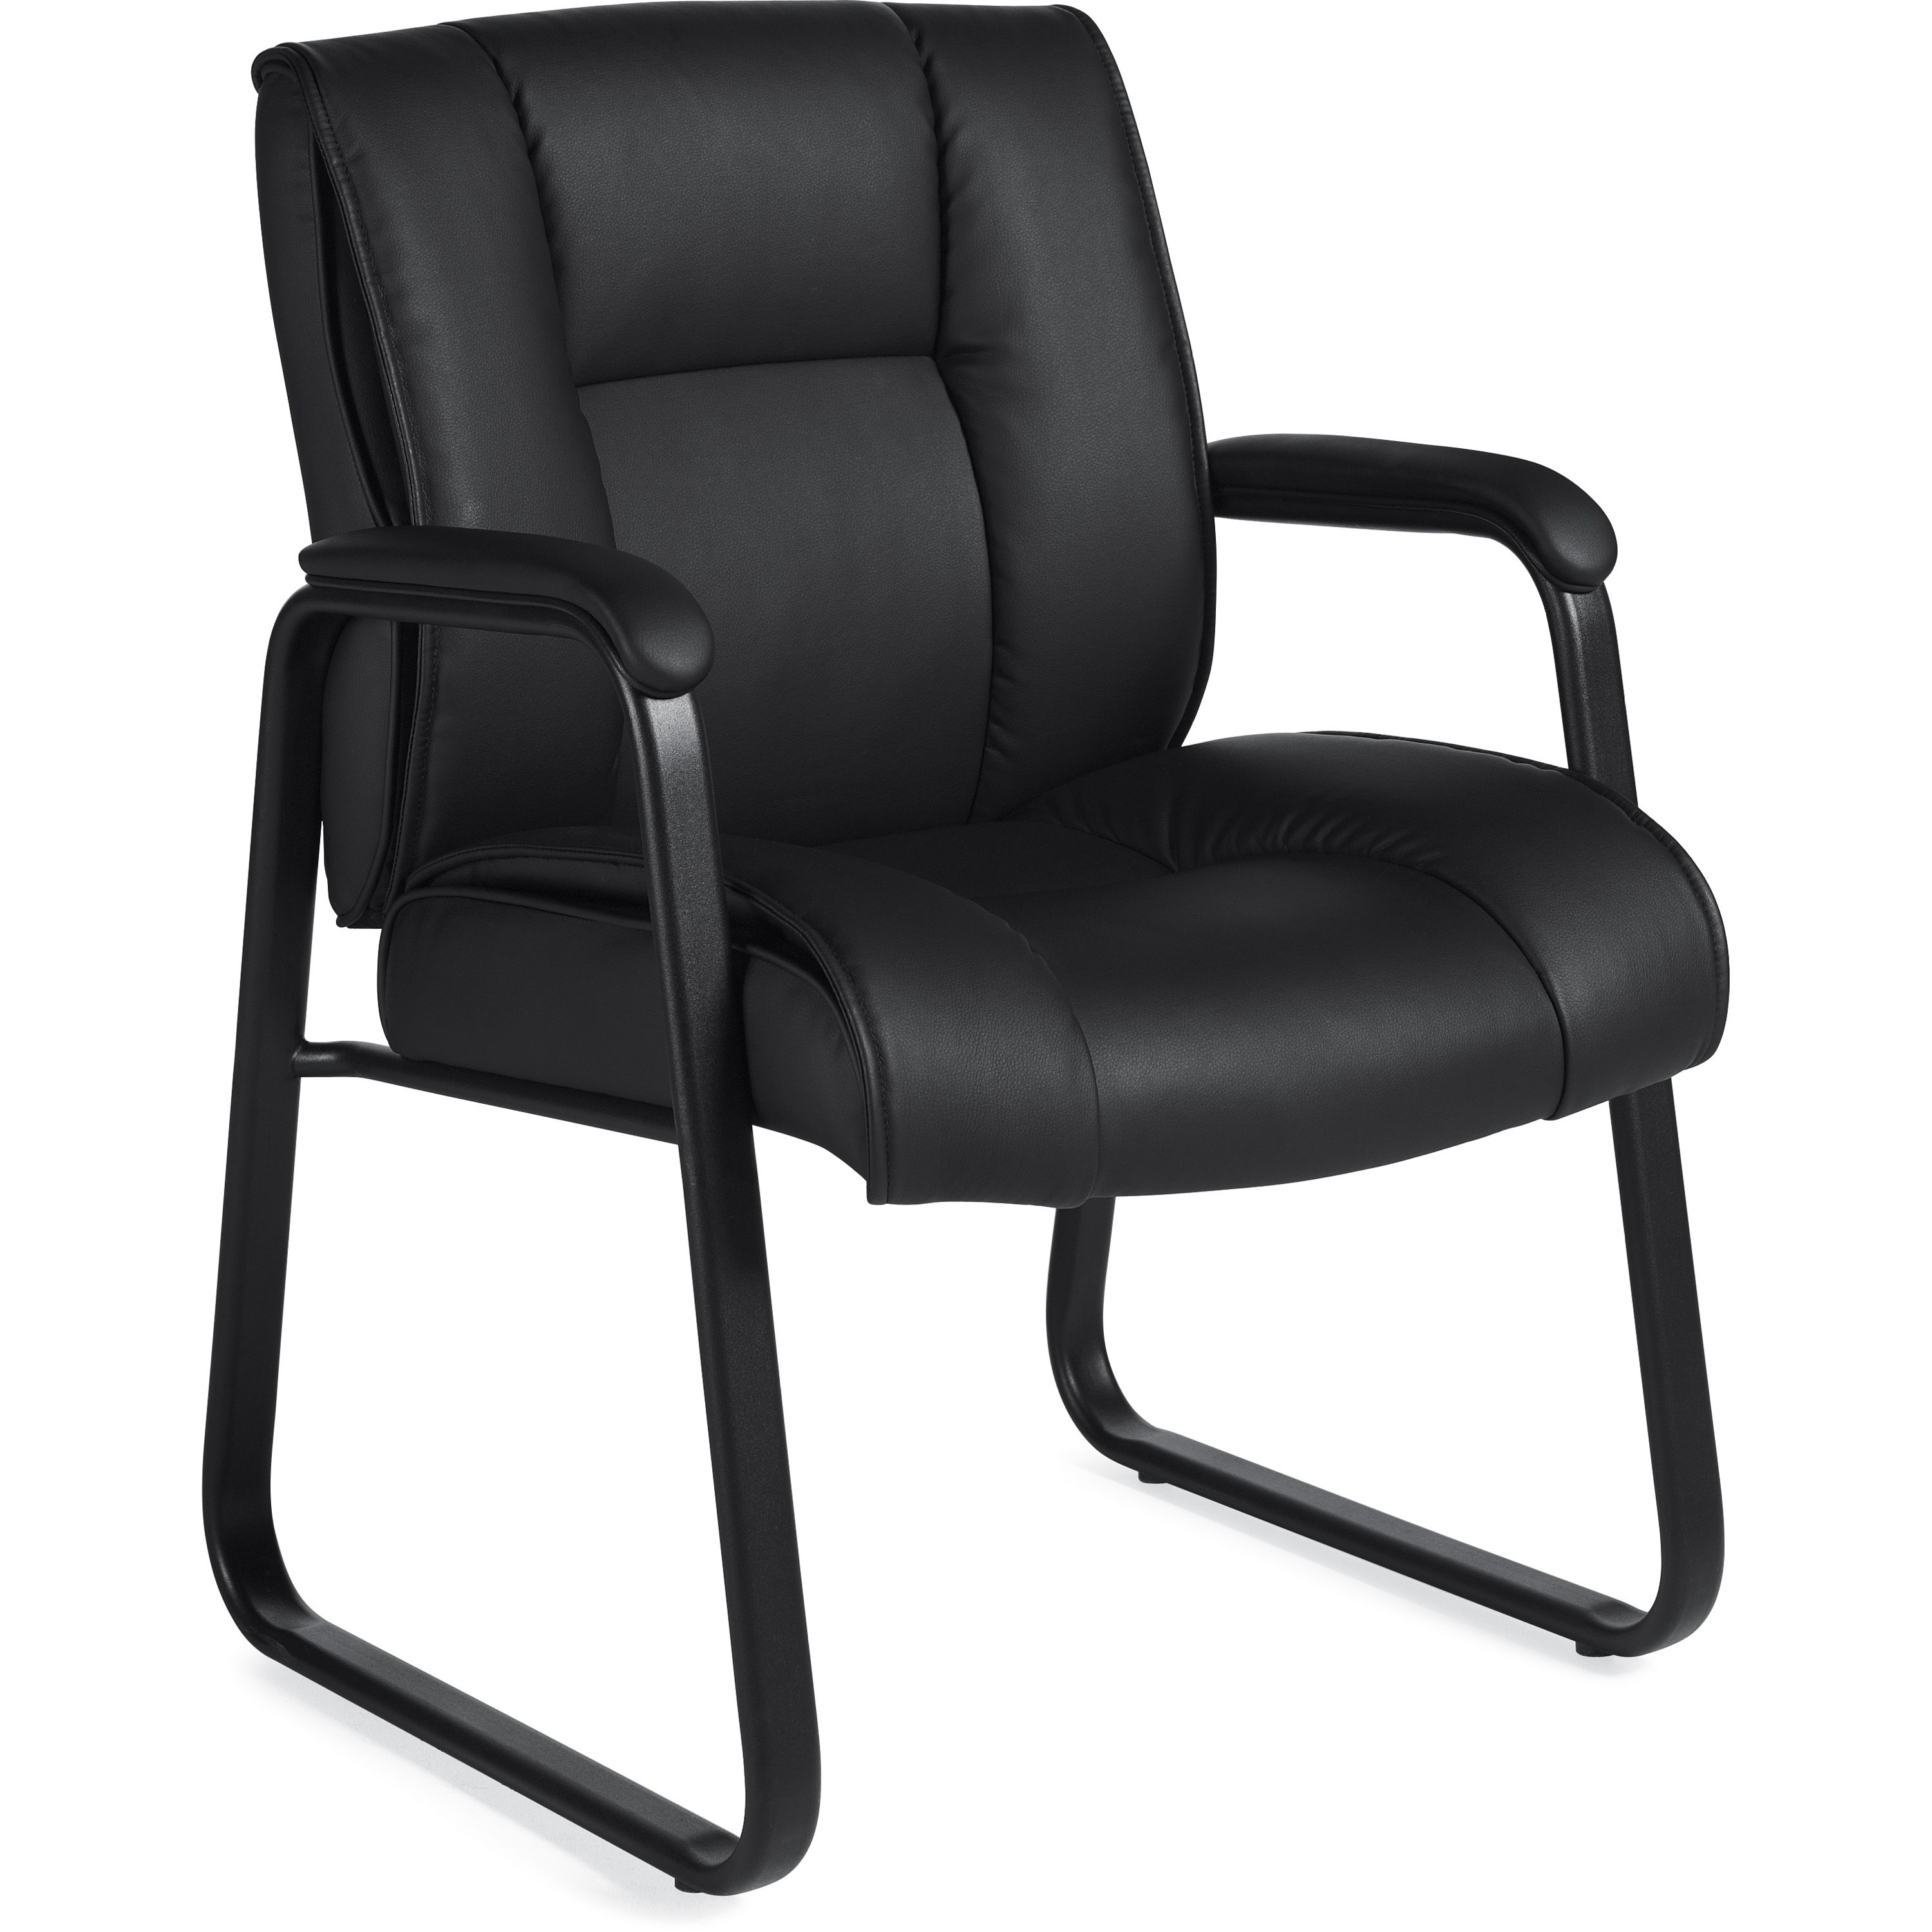 Tigerlily Concepts Inc Furniture Chairs Chair Mats Accessories Chairs Reception Side Guest Chairs Offices To Go Ashmont Medium Back Guest Chair Black Leather Seat